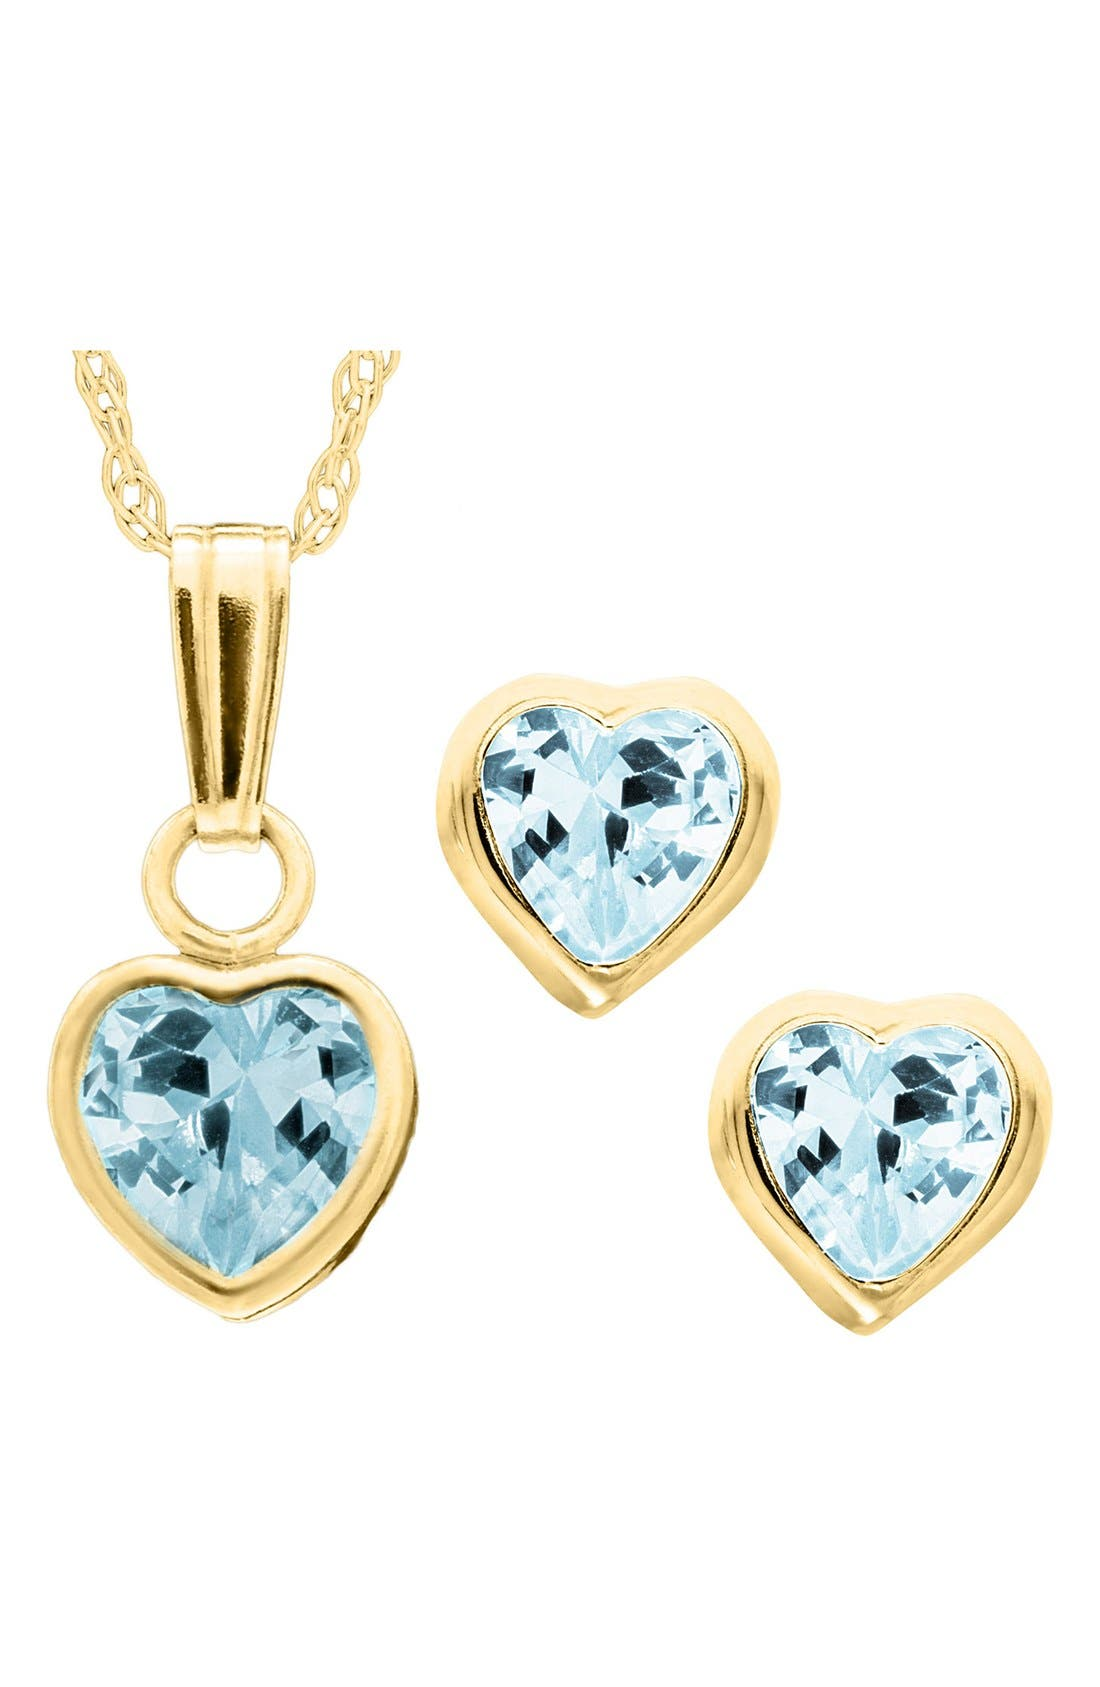 14k Gold Birthstone Necklace & Stud Earrings,                             Main thumbnail 1, color,                             DECEMBER